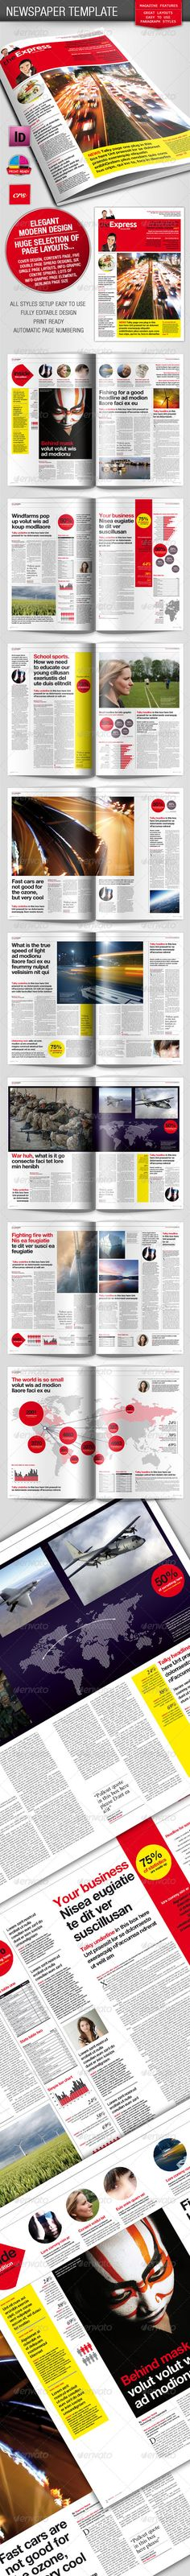 Broadsheet Newspaper Template  Newspaper Design